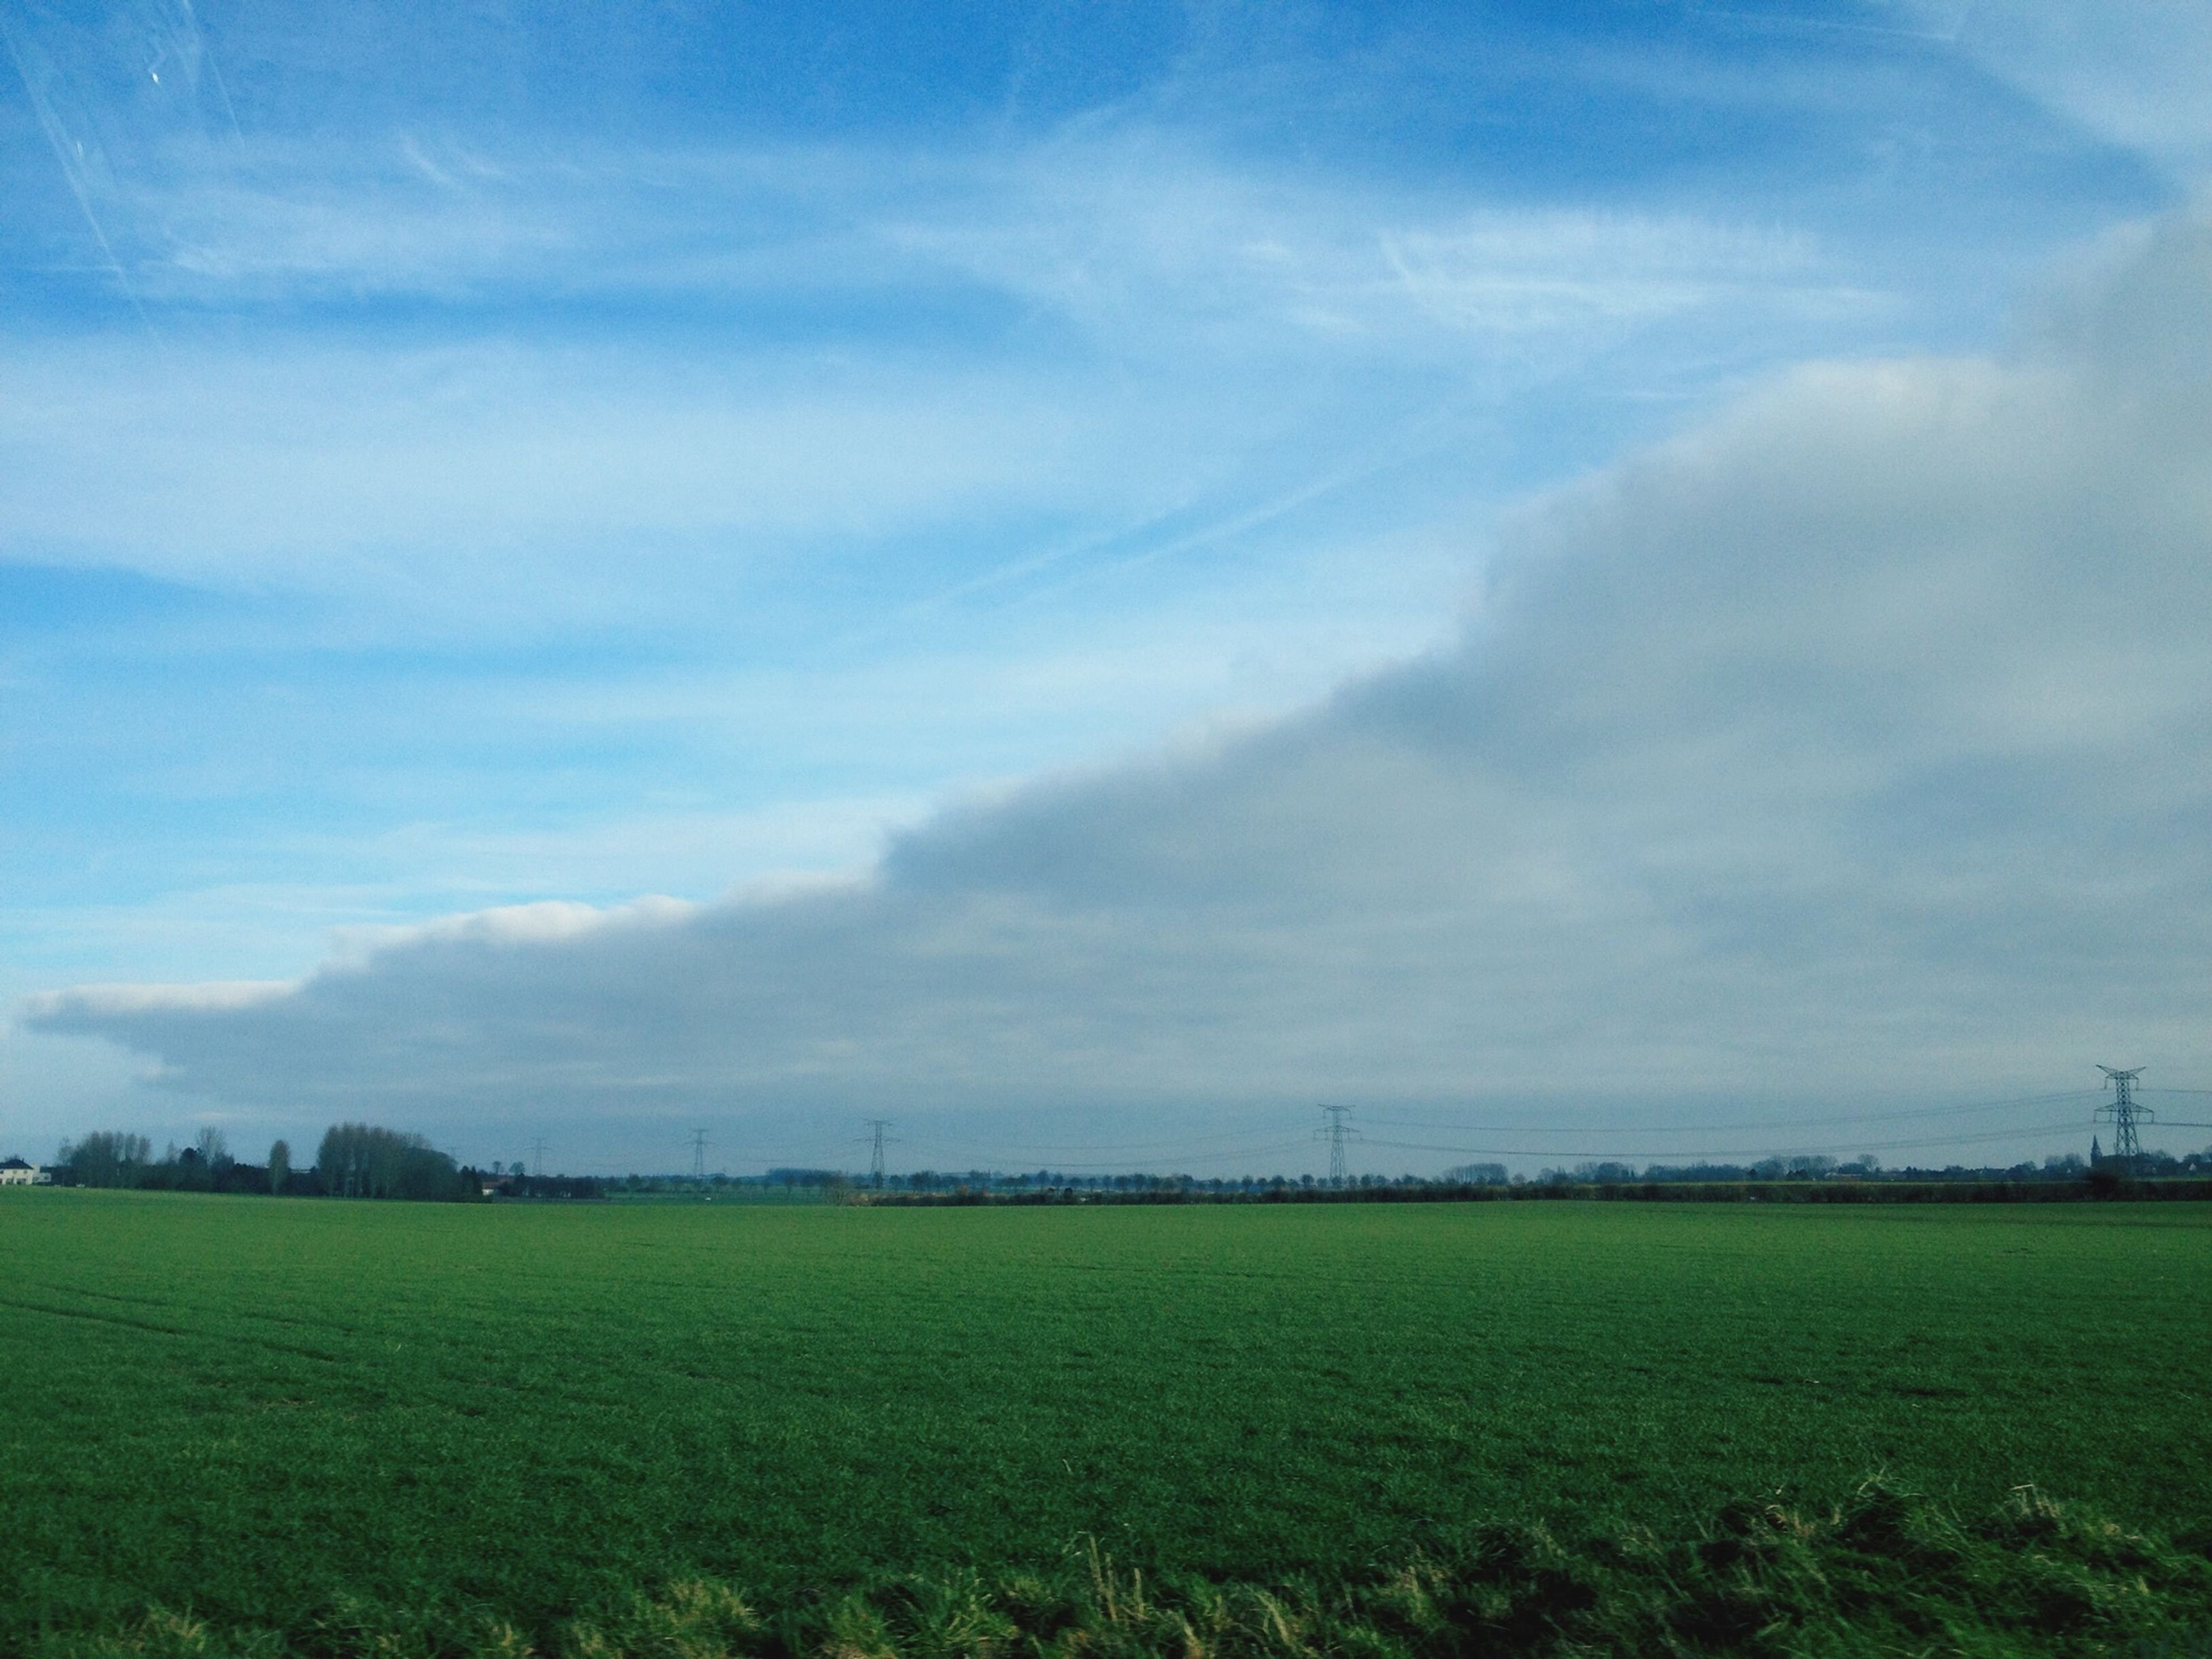 field, landscape, grass, sky, tranquil scene, tranquility, green color, scenics, beauty in nature, nature, rural scene, cloud - sky, grassy, agriculture, growth, cloud, farm, cloudy, blue, idyllic